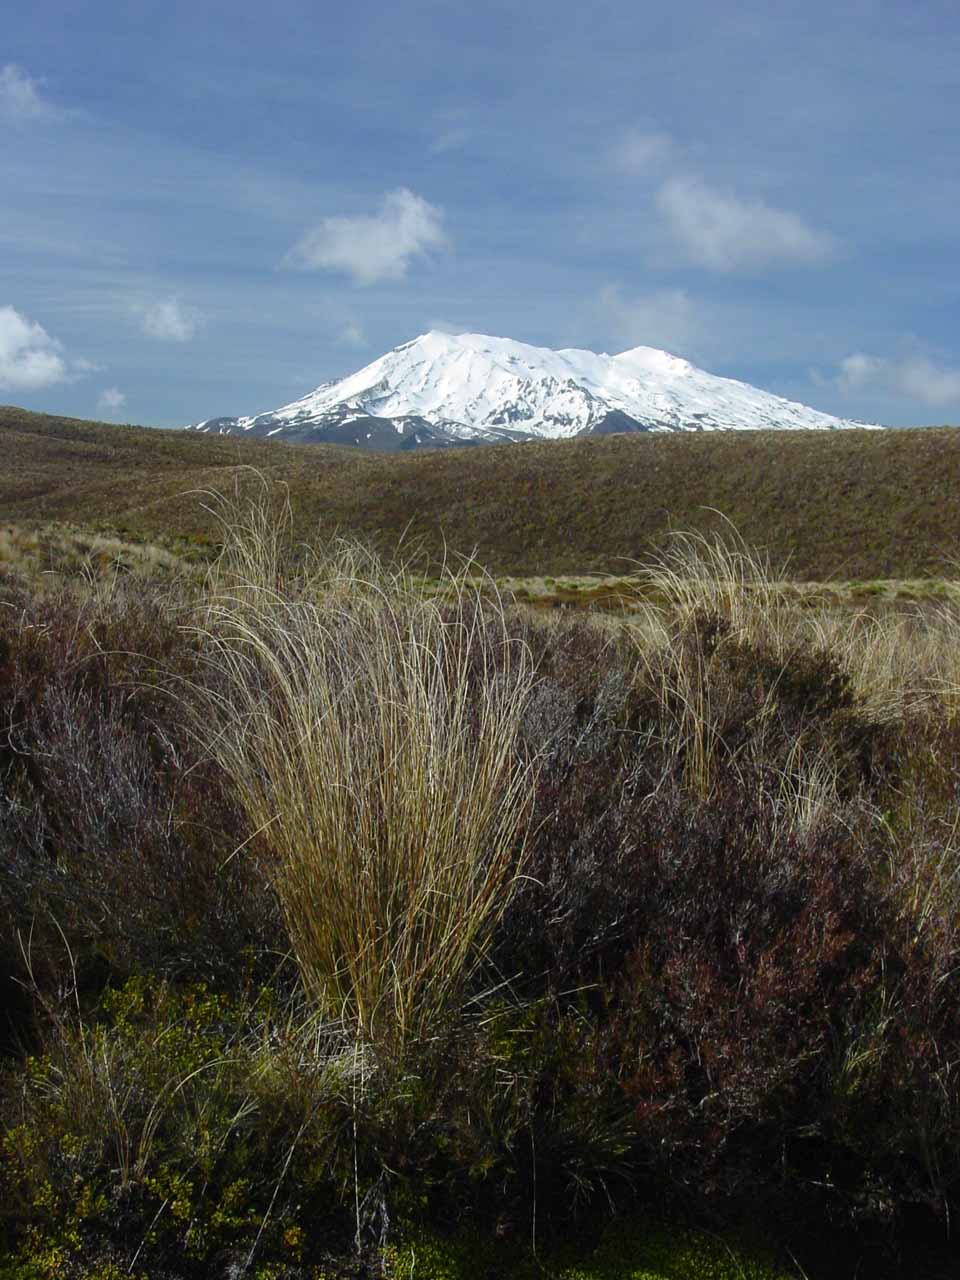 Looking towards Mt Ruapehu from the Tongariro Crossing's early sections